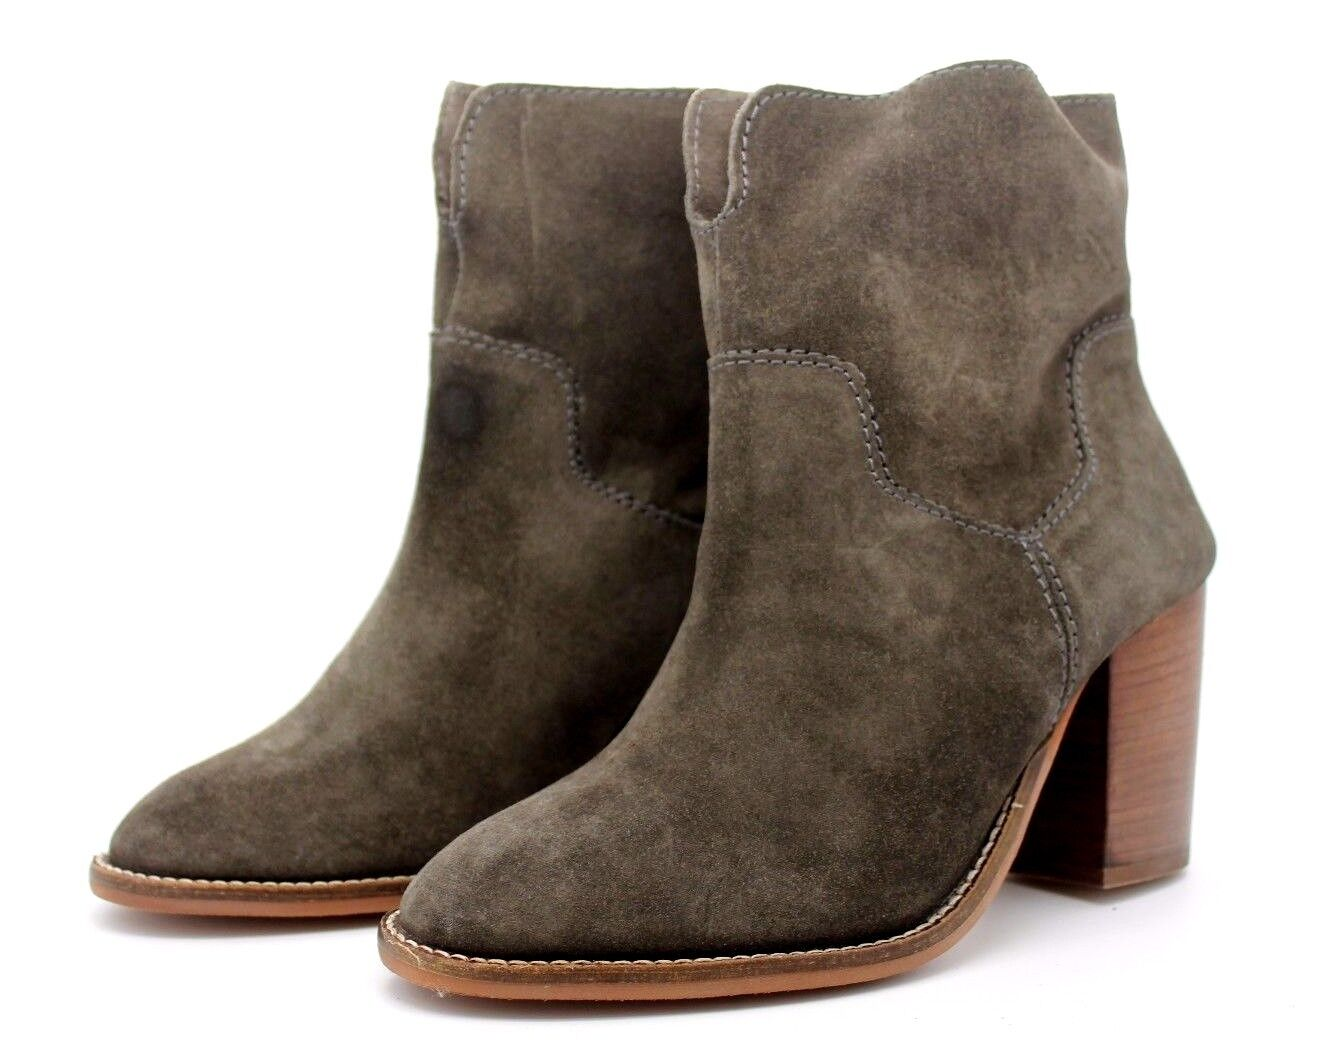 Debenhams Designers Womens UK 6 Grey Suede Leather Western Ankle Boots - Defect